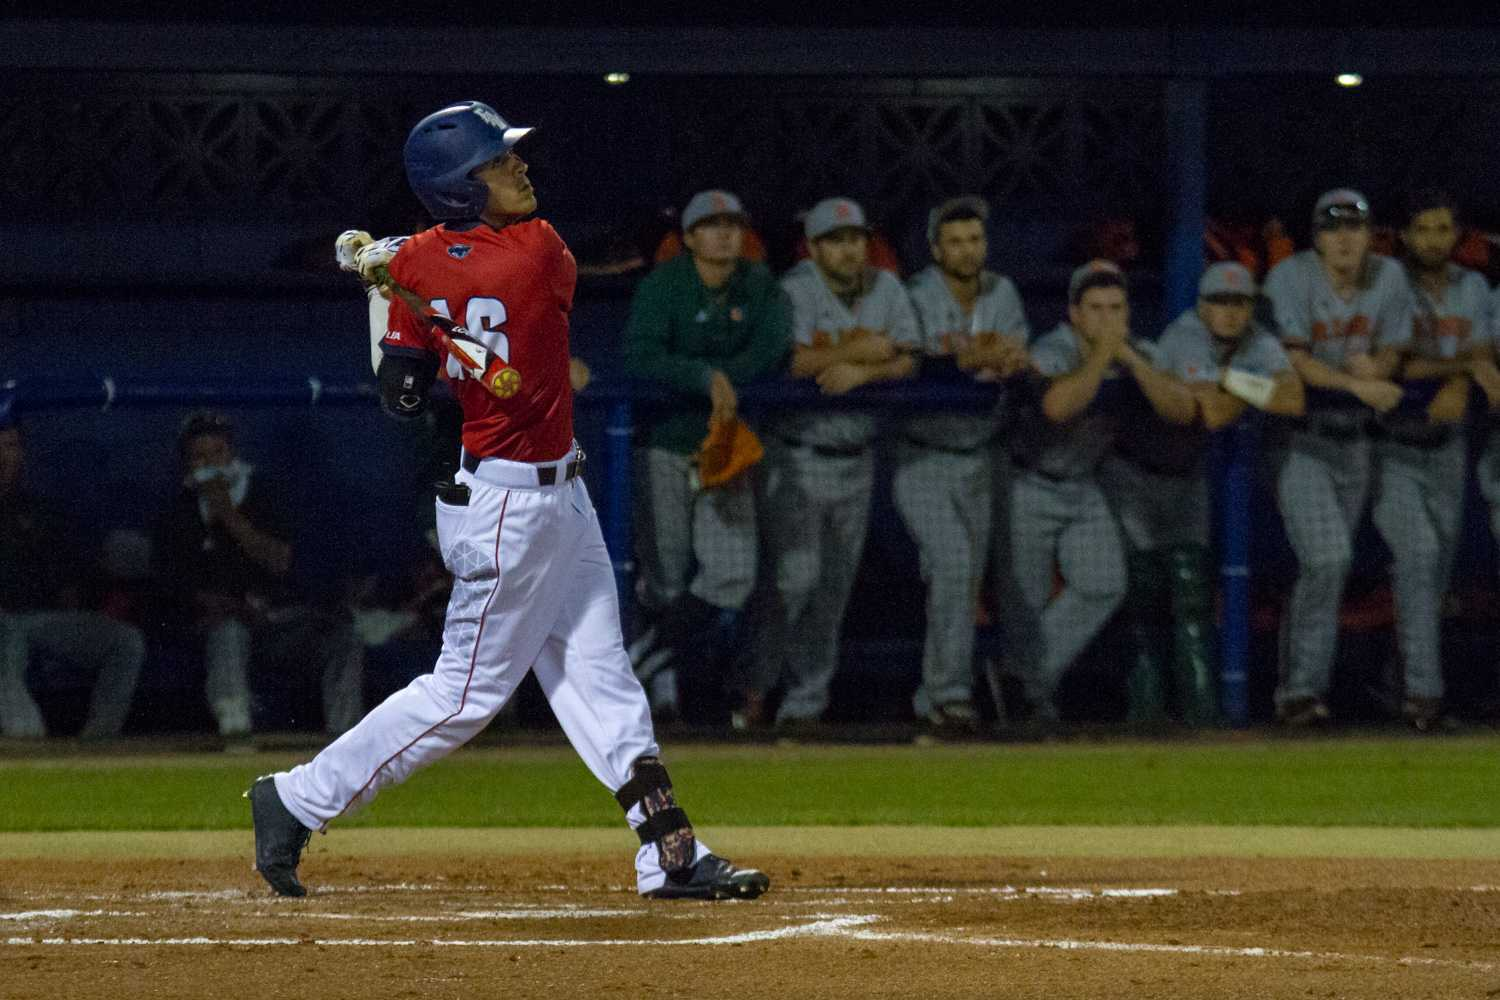 Freshman center fielder Eric Rivera went 3-for-5 with a home run, three RBIs and two runs scored in Sunday's win over Illinois. Ryan Lynch | Editor in Chief